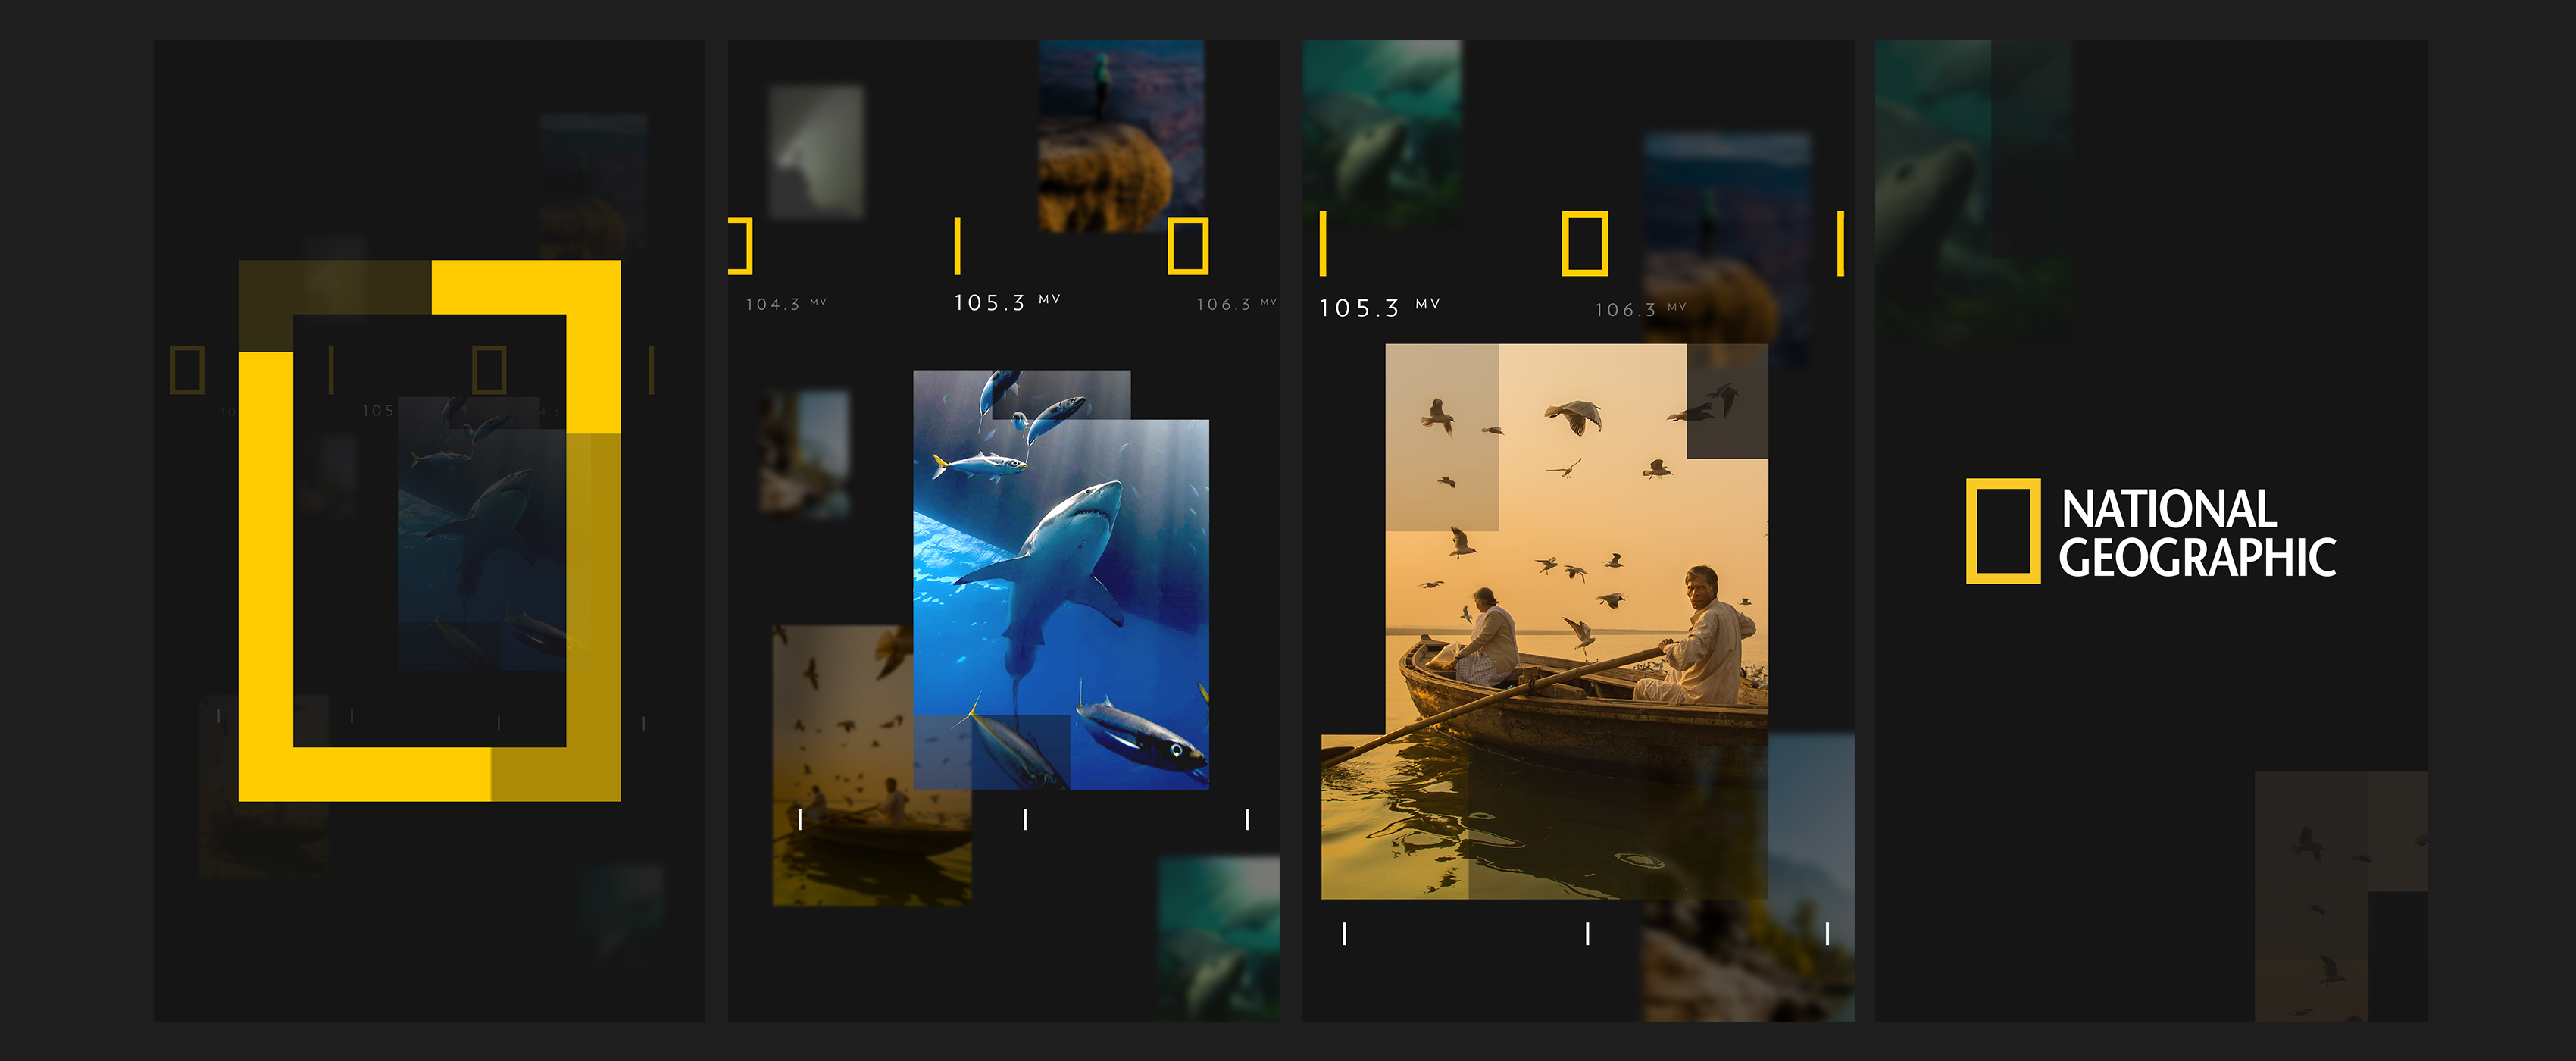 NatGeo_Design_Board_Thumbs_r2_v01